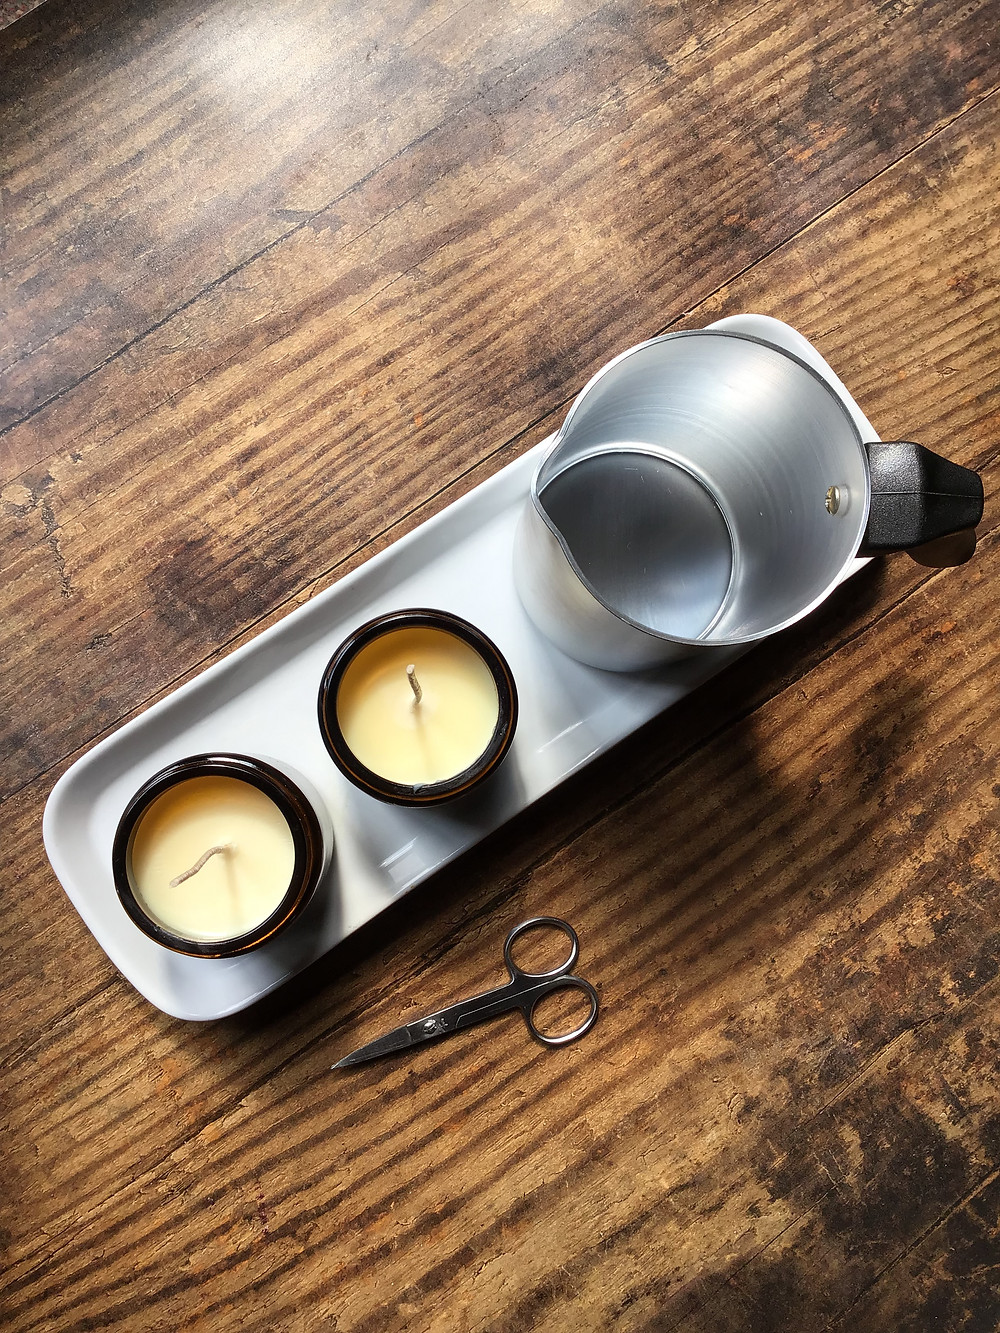 two soy candles in amber jars and candle jug on white tray on wooden surface with scissors